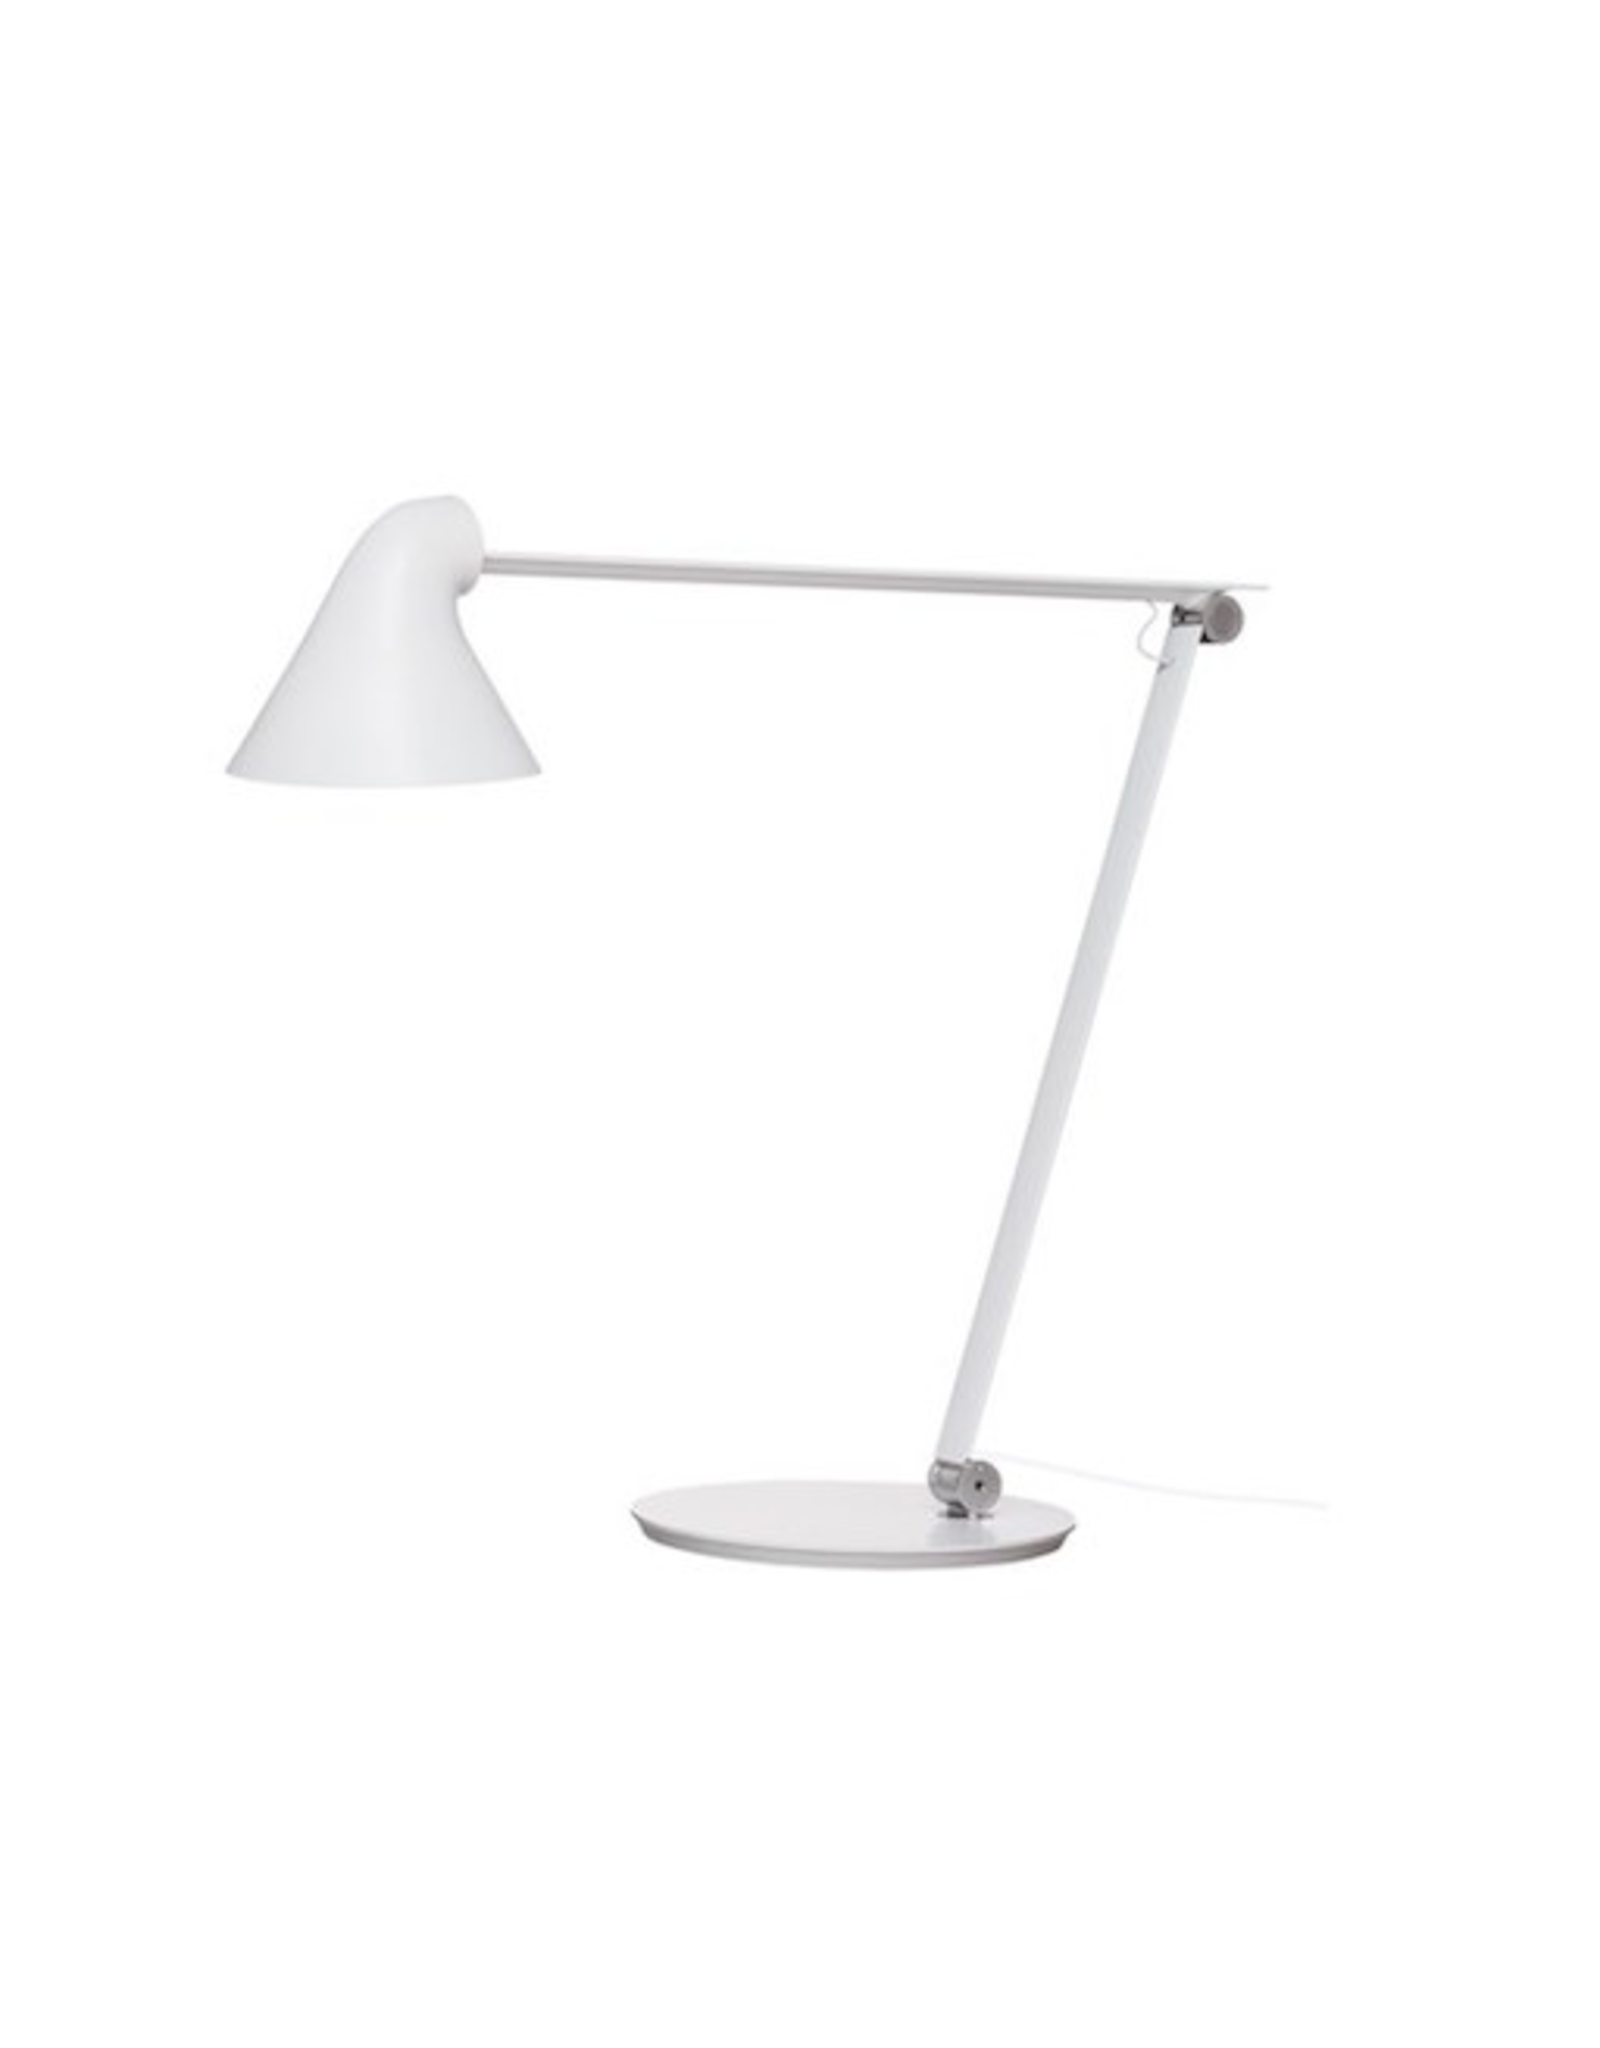 LOUIS POULSEN NJP TABLE LAMP, WHITE FINISH